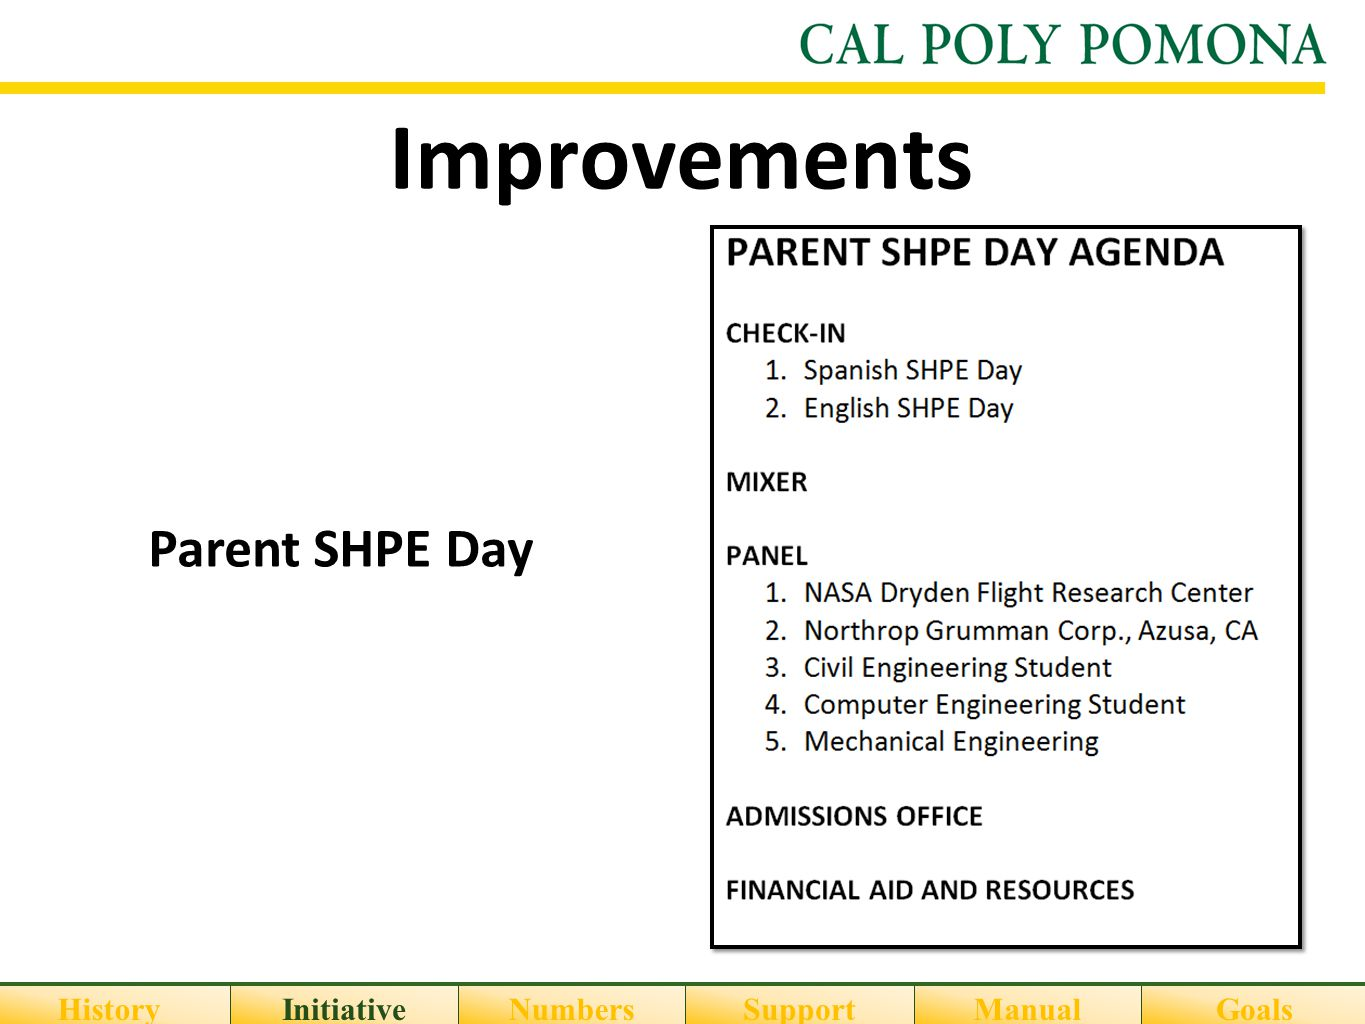 Improvements HistoryInitiativeNumbersSupportGoalsManual Parent SHPE Day